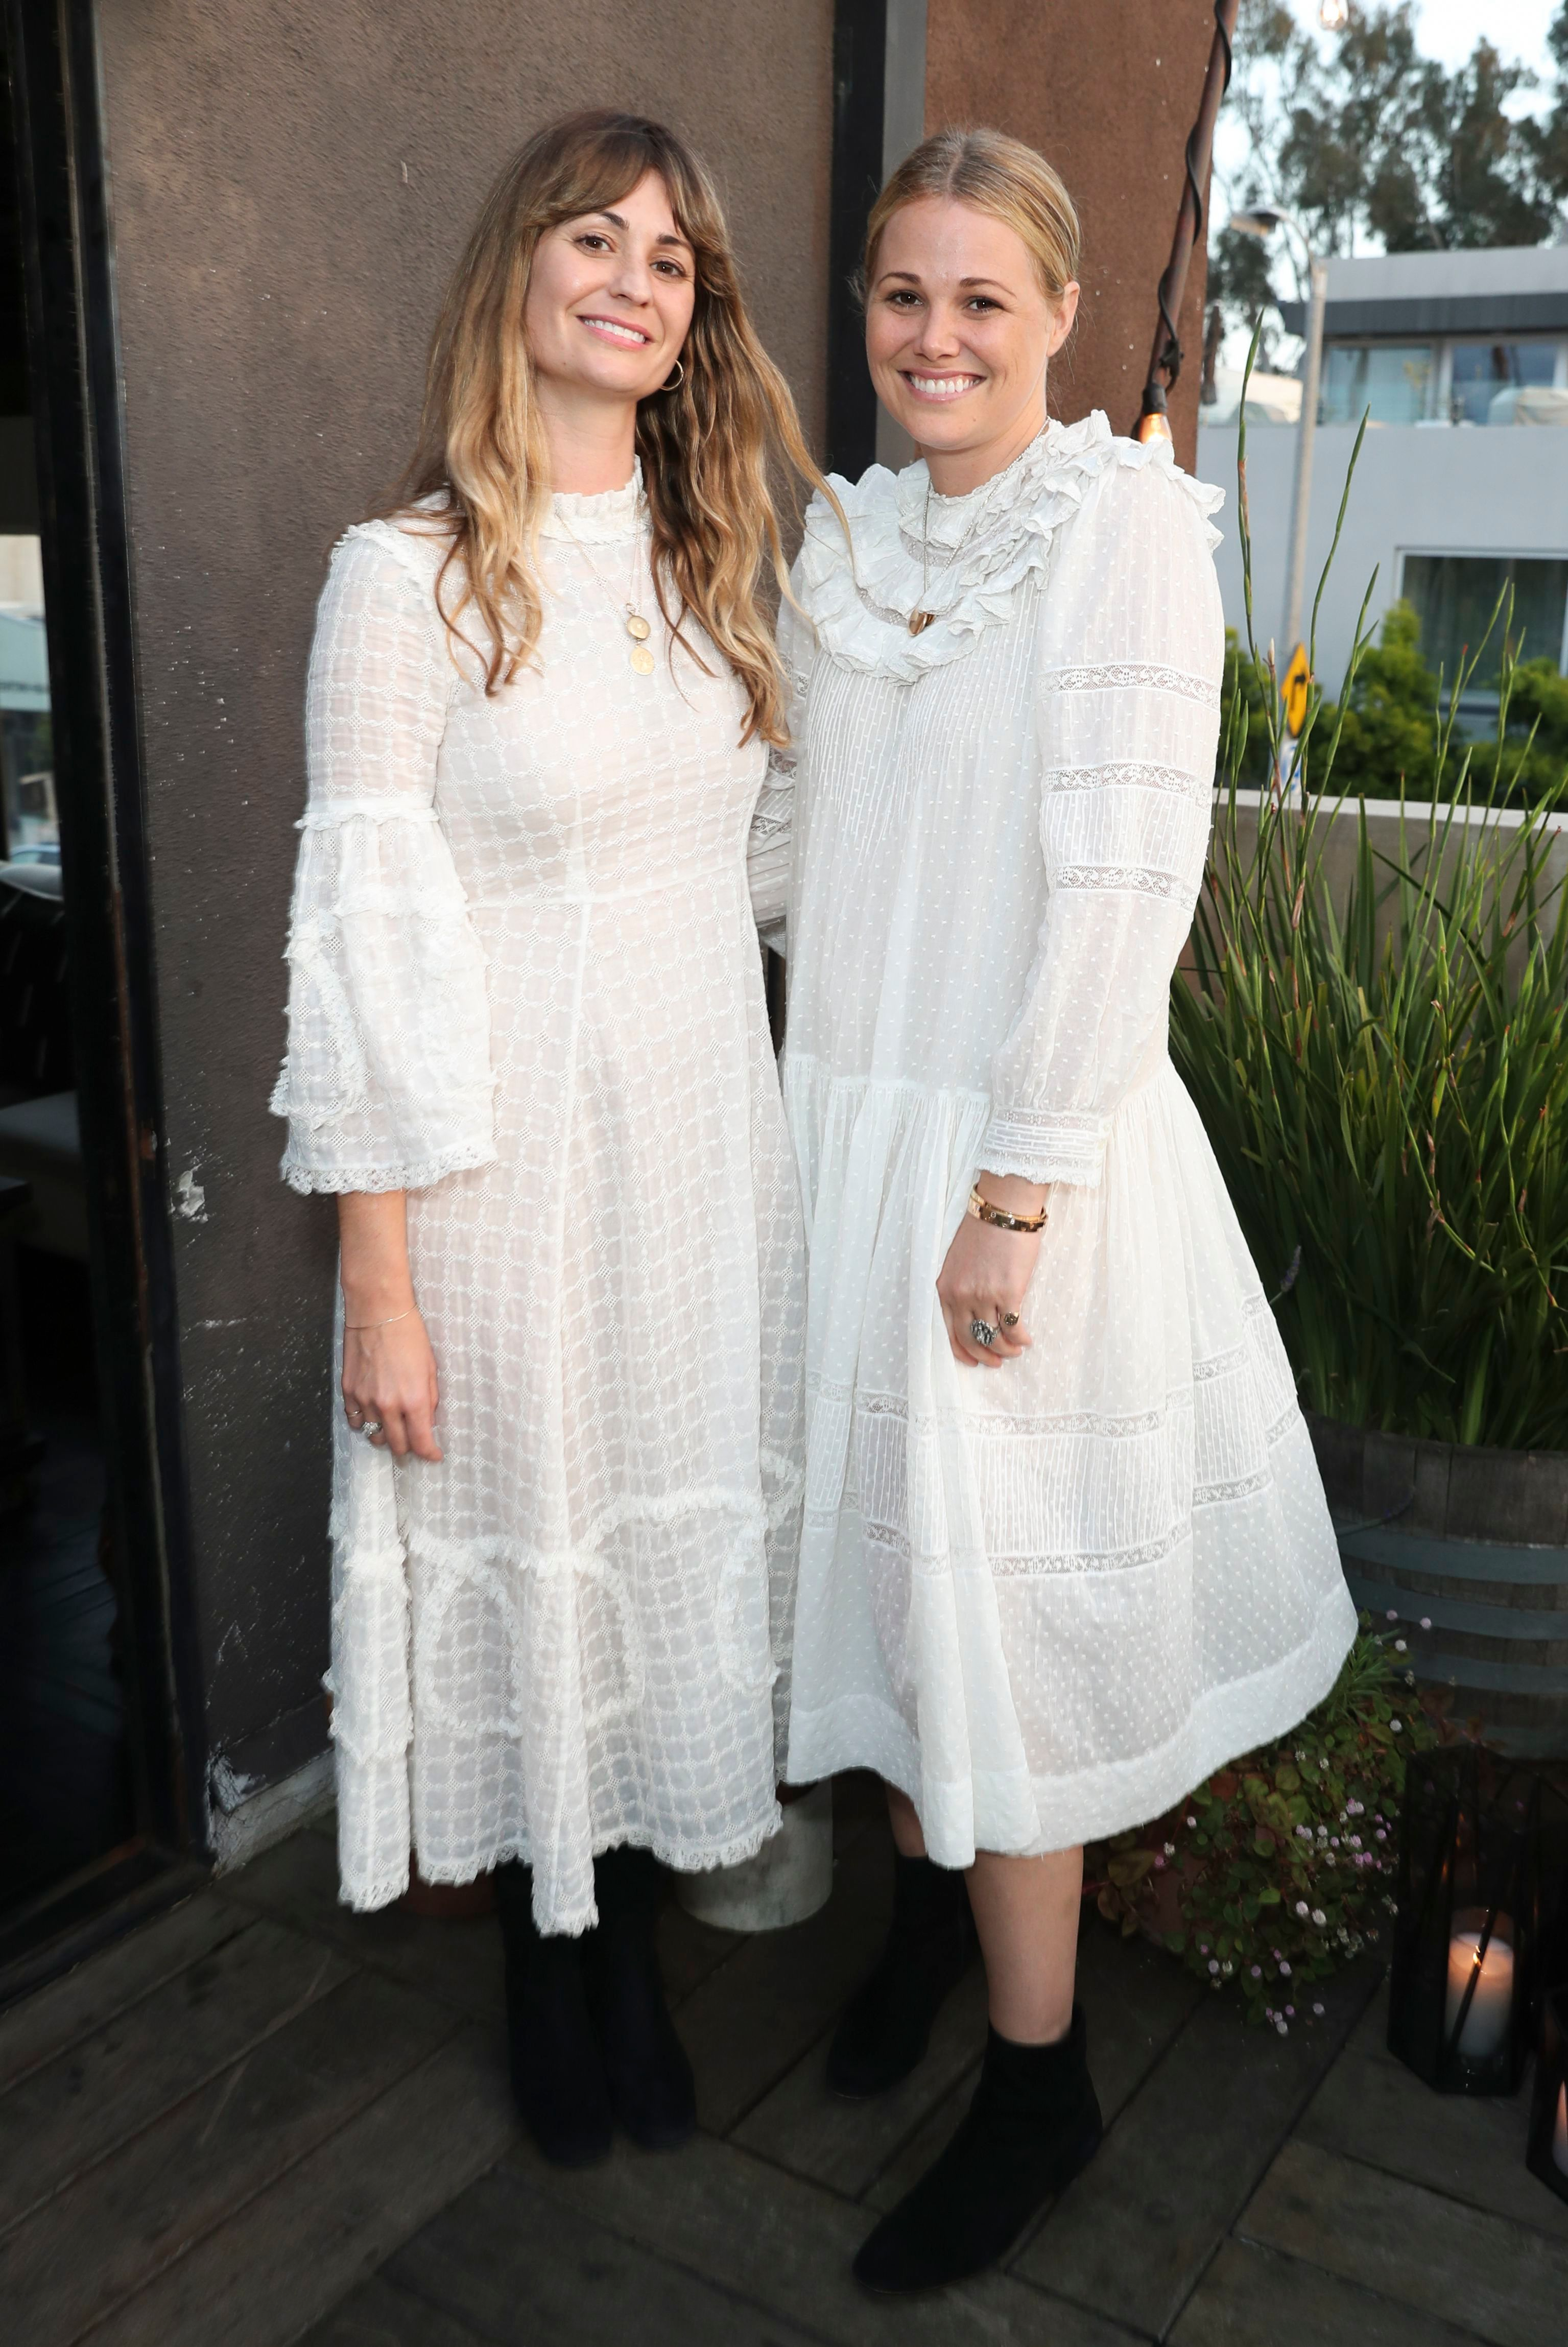 Margaret Kleveland and Katherine KlevelandNET-A-PORTER Doen Dinner, Gjelina, Los Angeles, USA - 29 Apr 2019